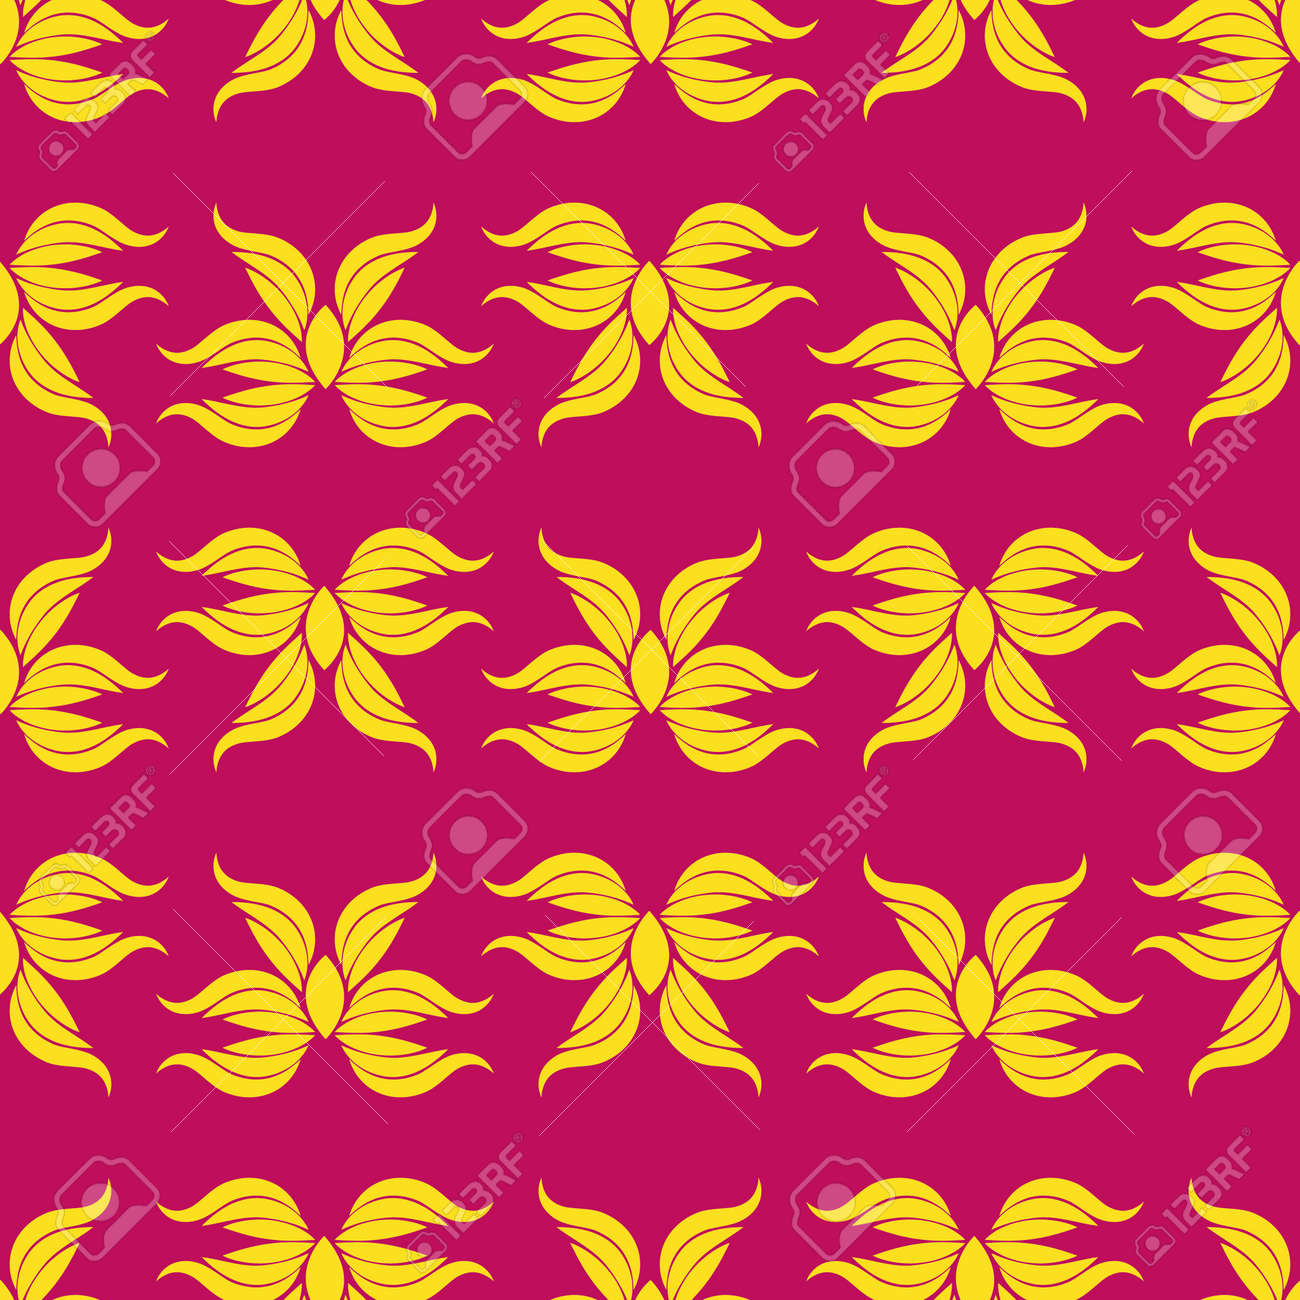 Abstract vintage bright pattern. Stock Vector - 92298620